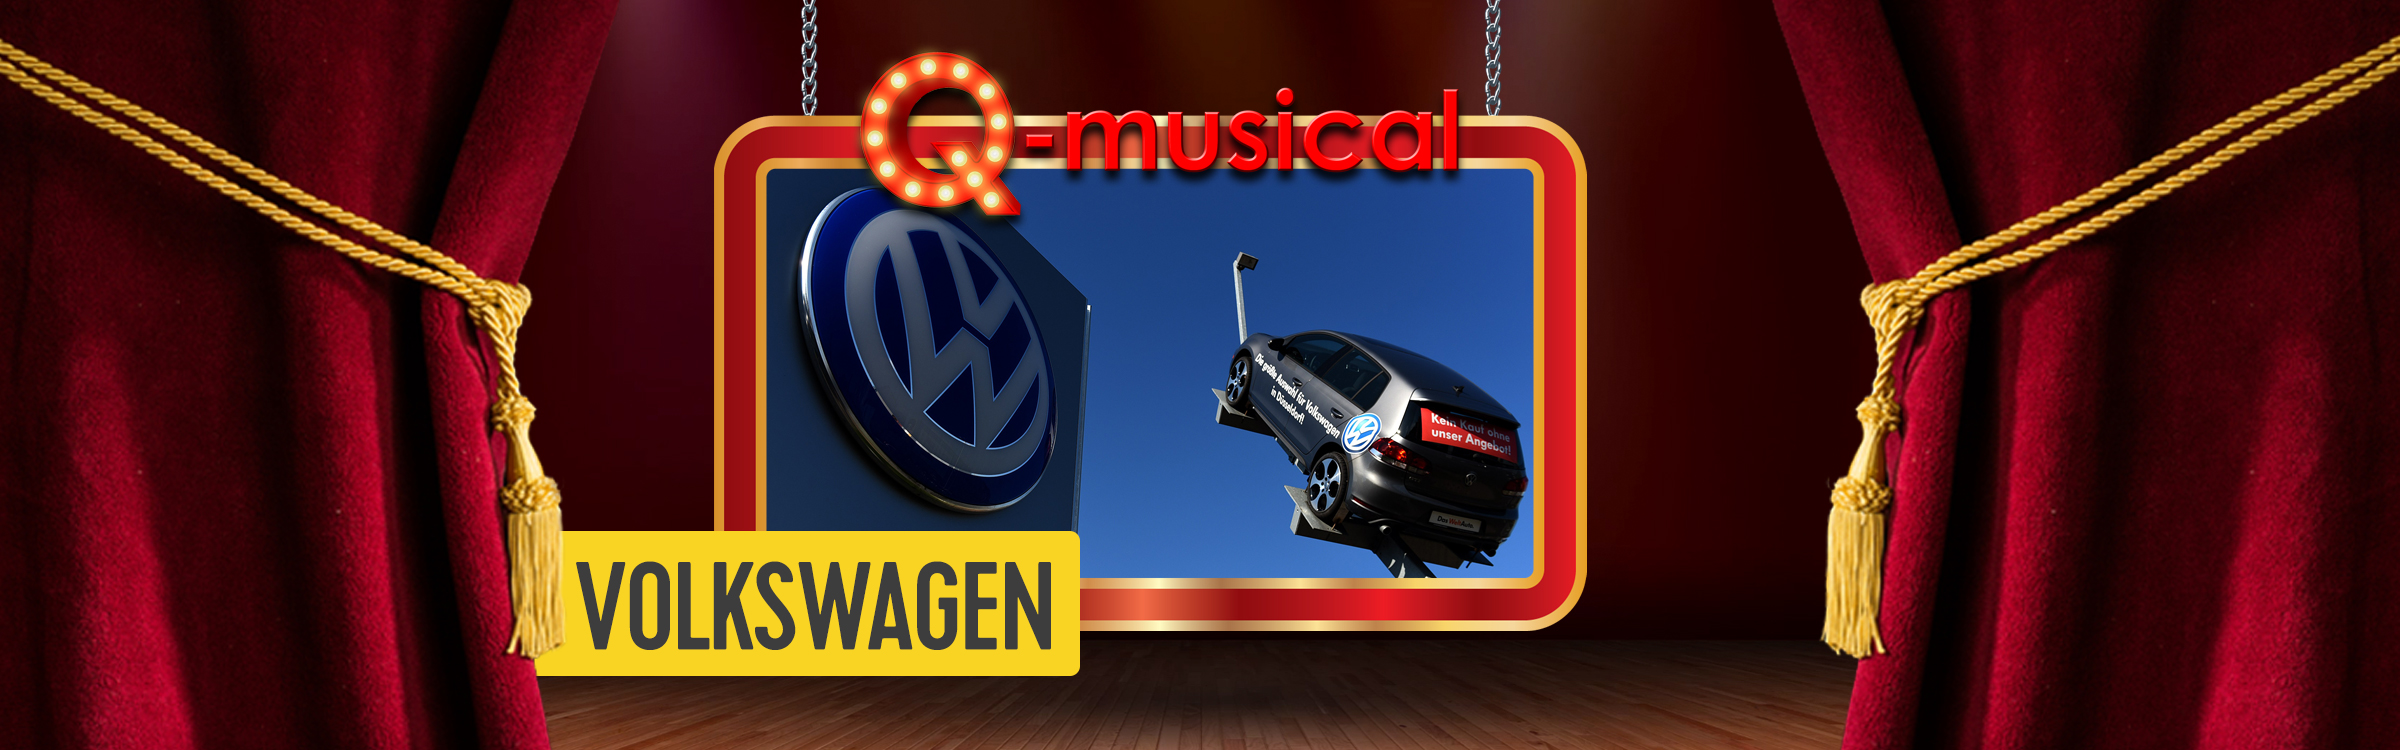 Vw qmusical header